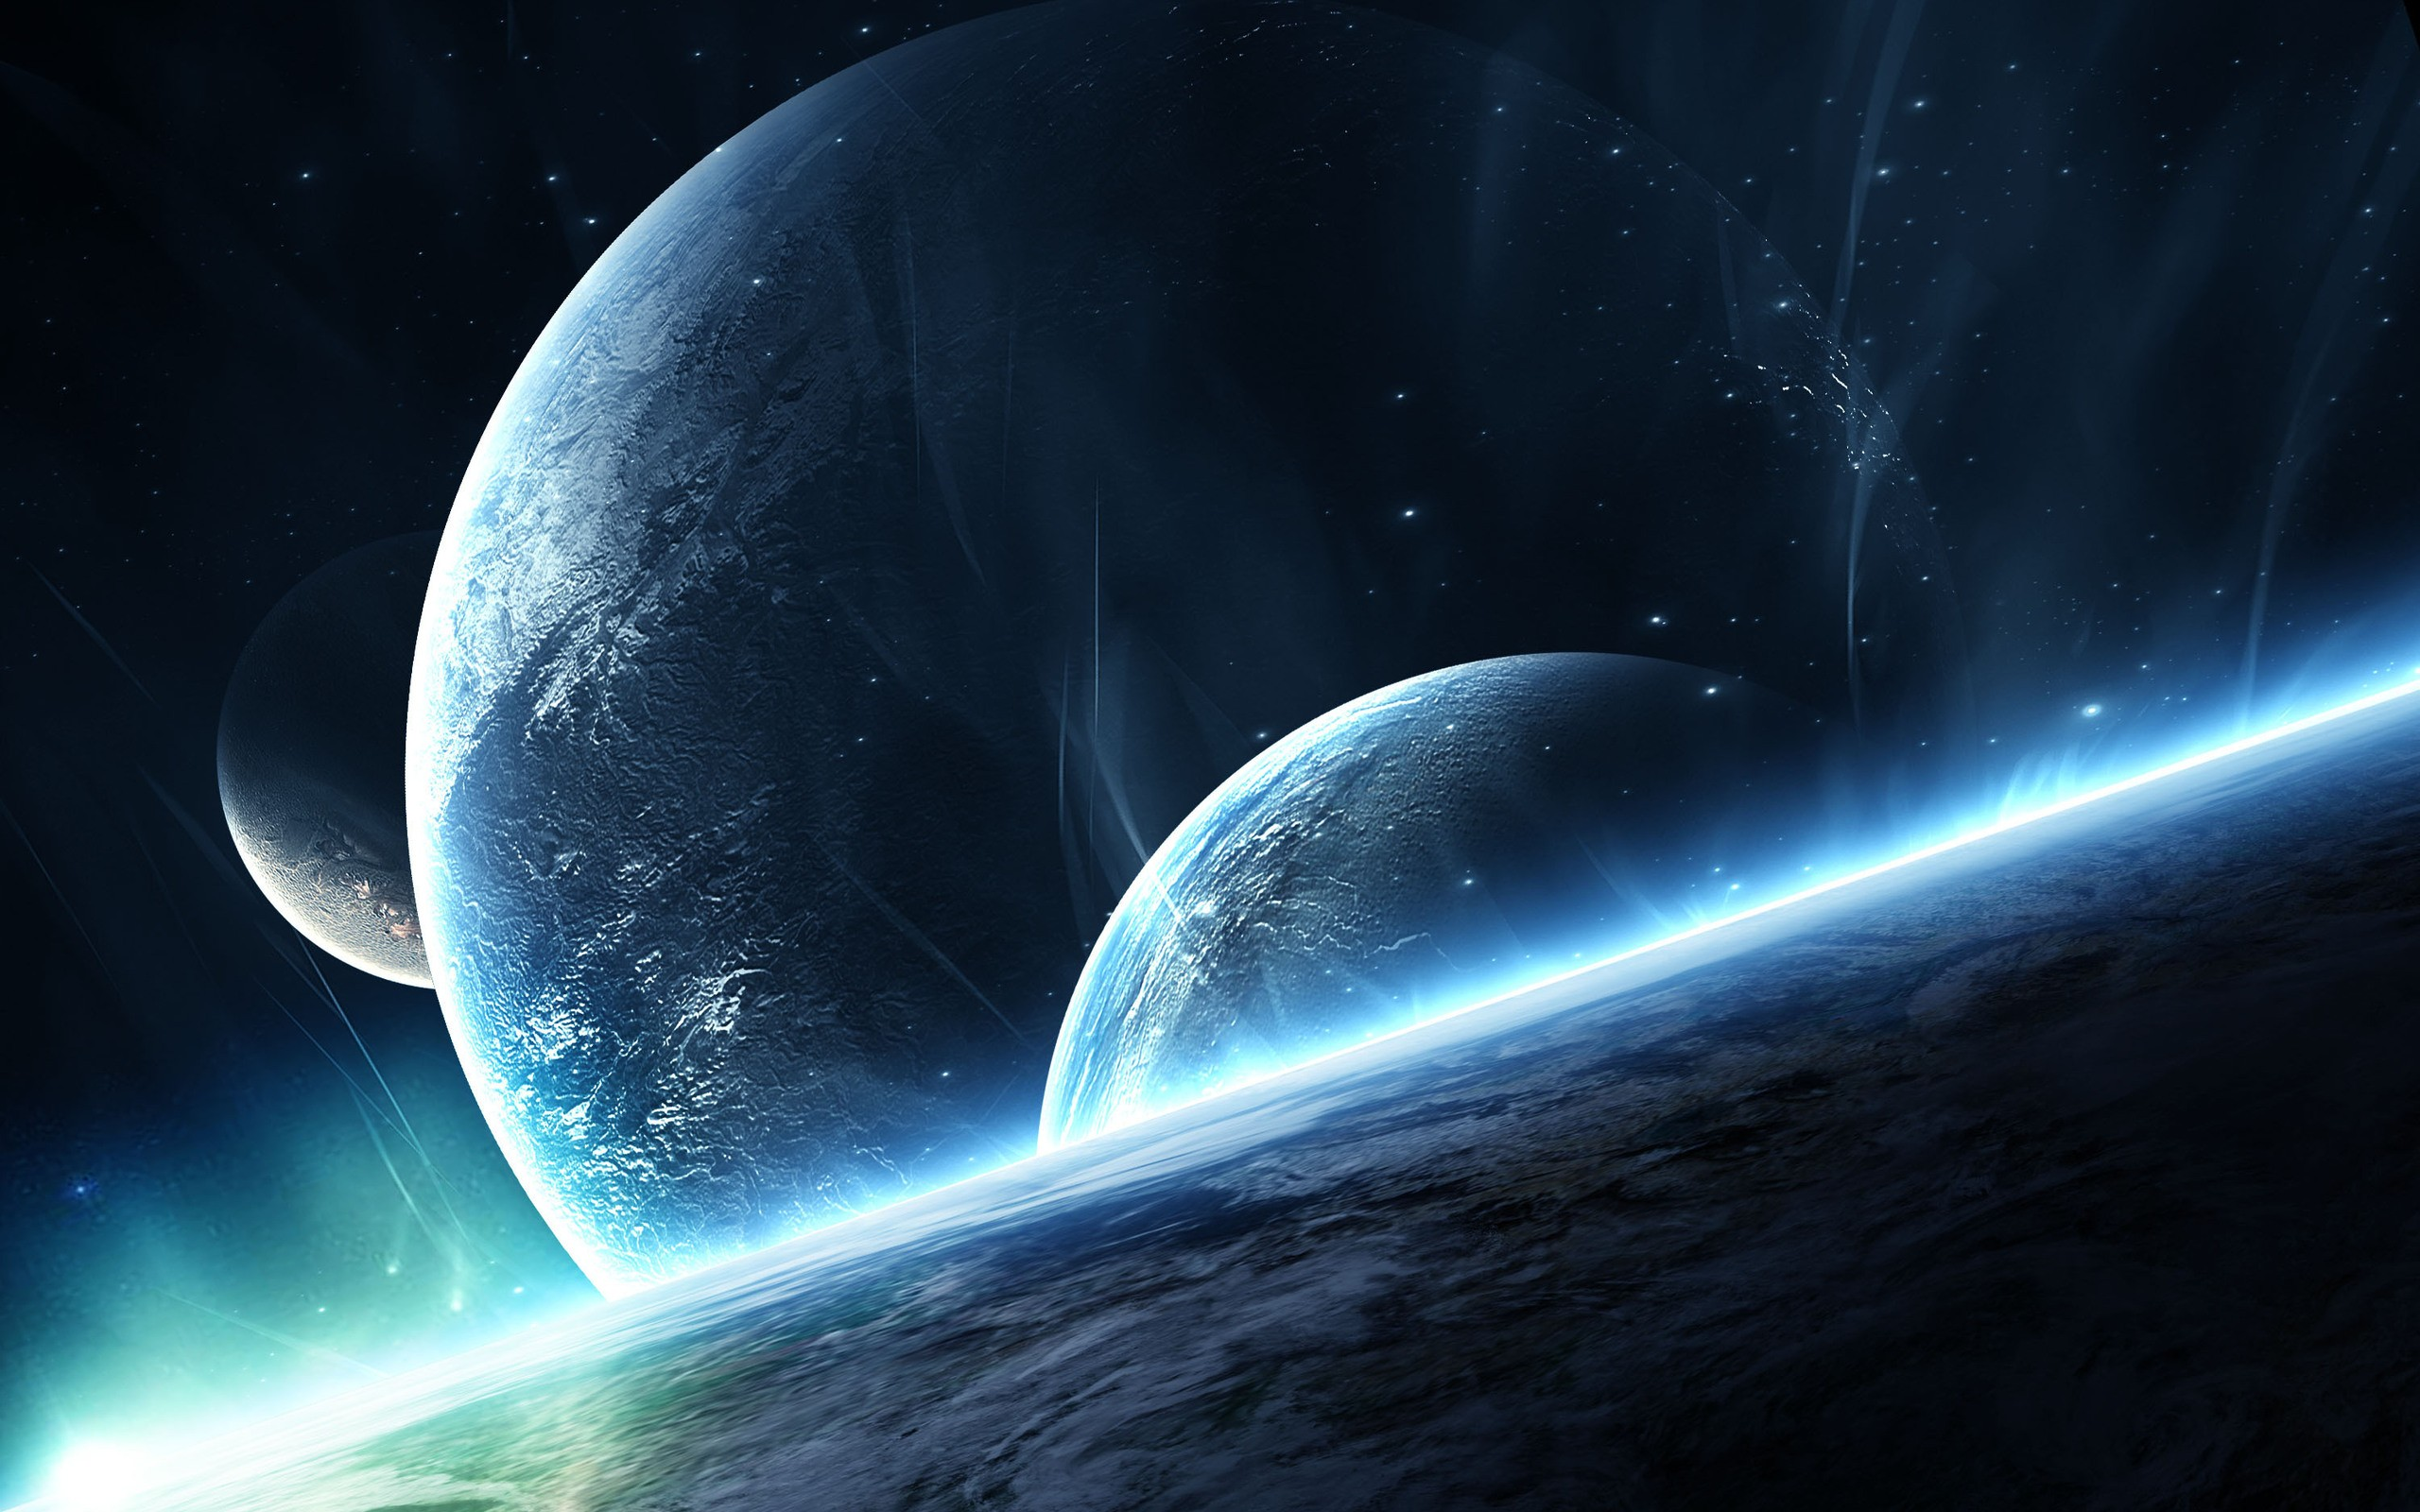 Outer space wallpaper 4358 2560x1600 px for Space and outer space